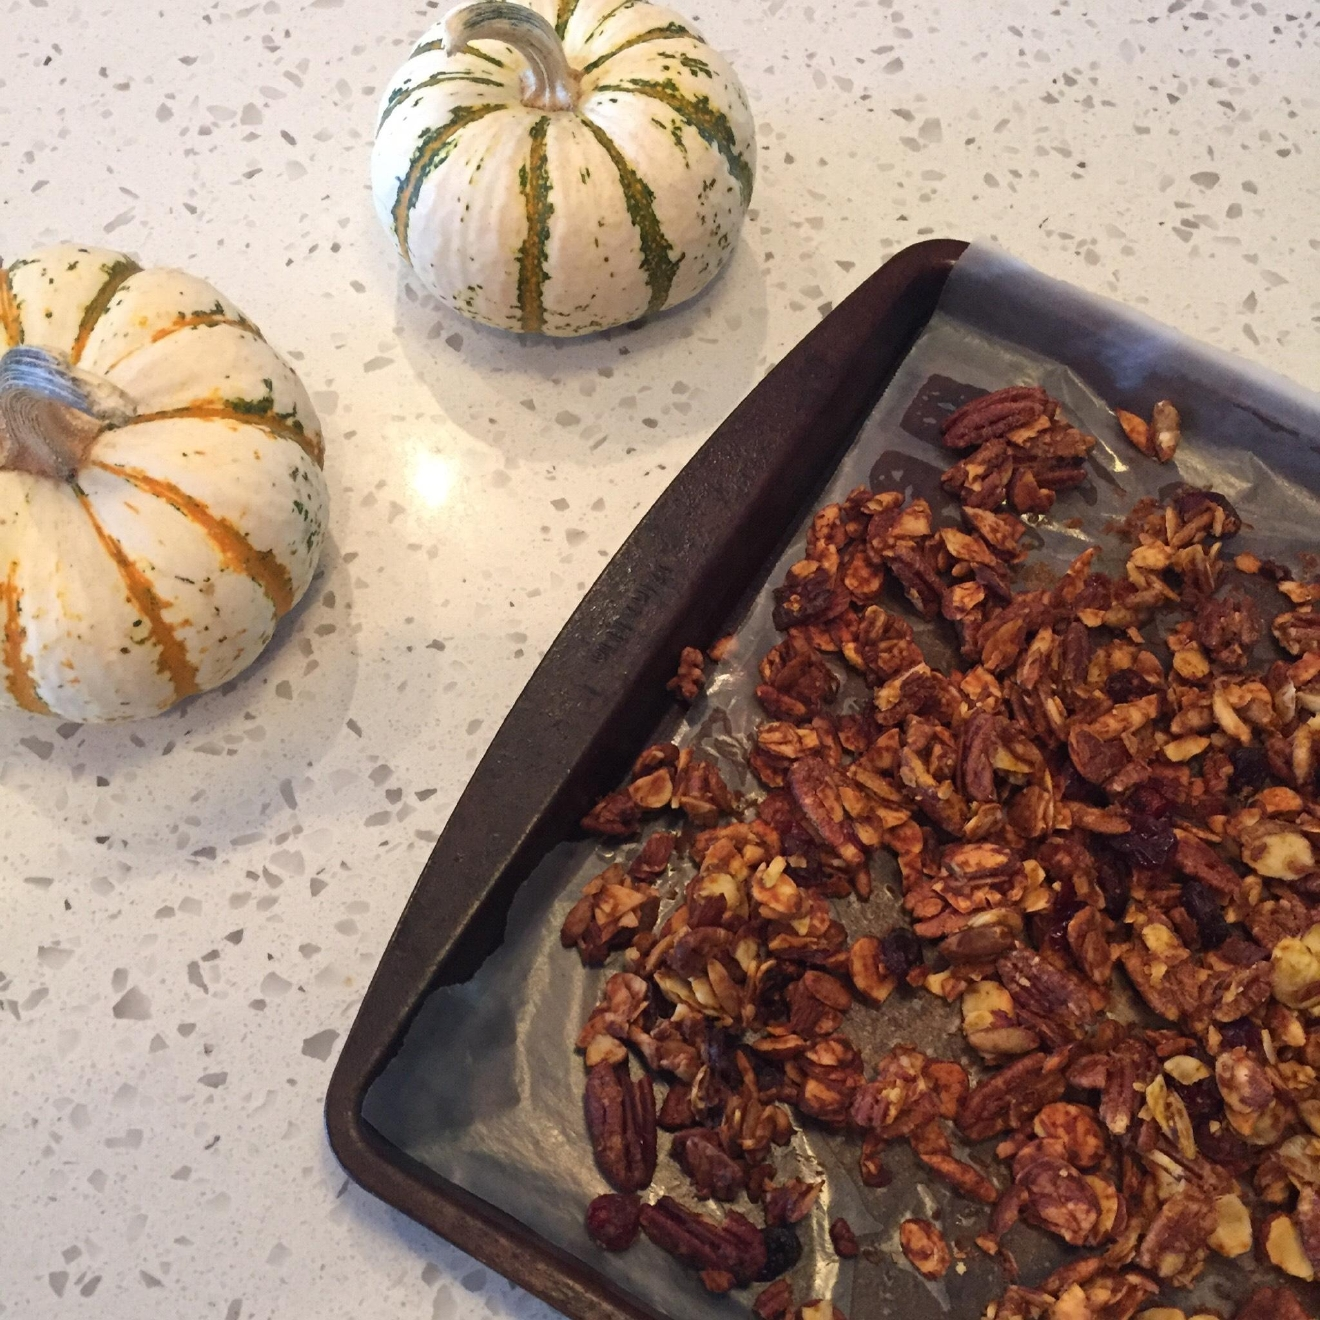 Danielle's Paleo-Friendly Pumpkin Granola (Photo: Danielle Milanowski)